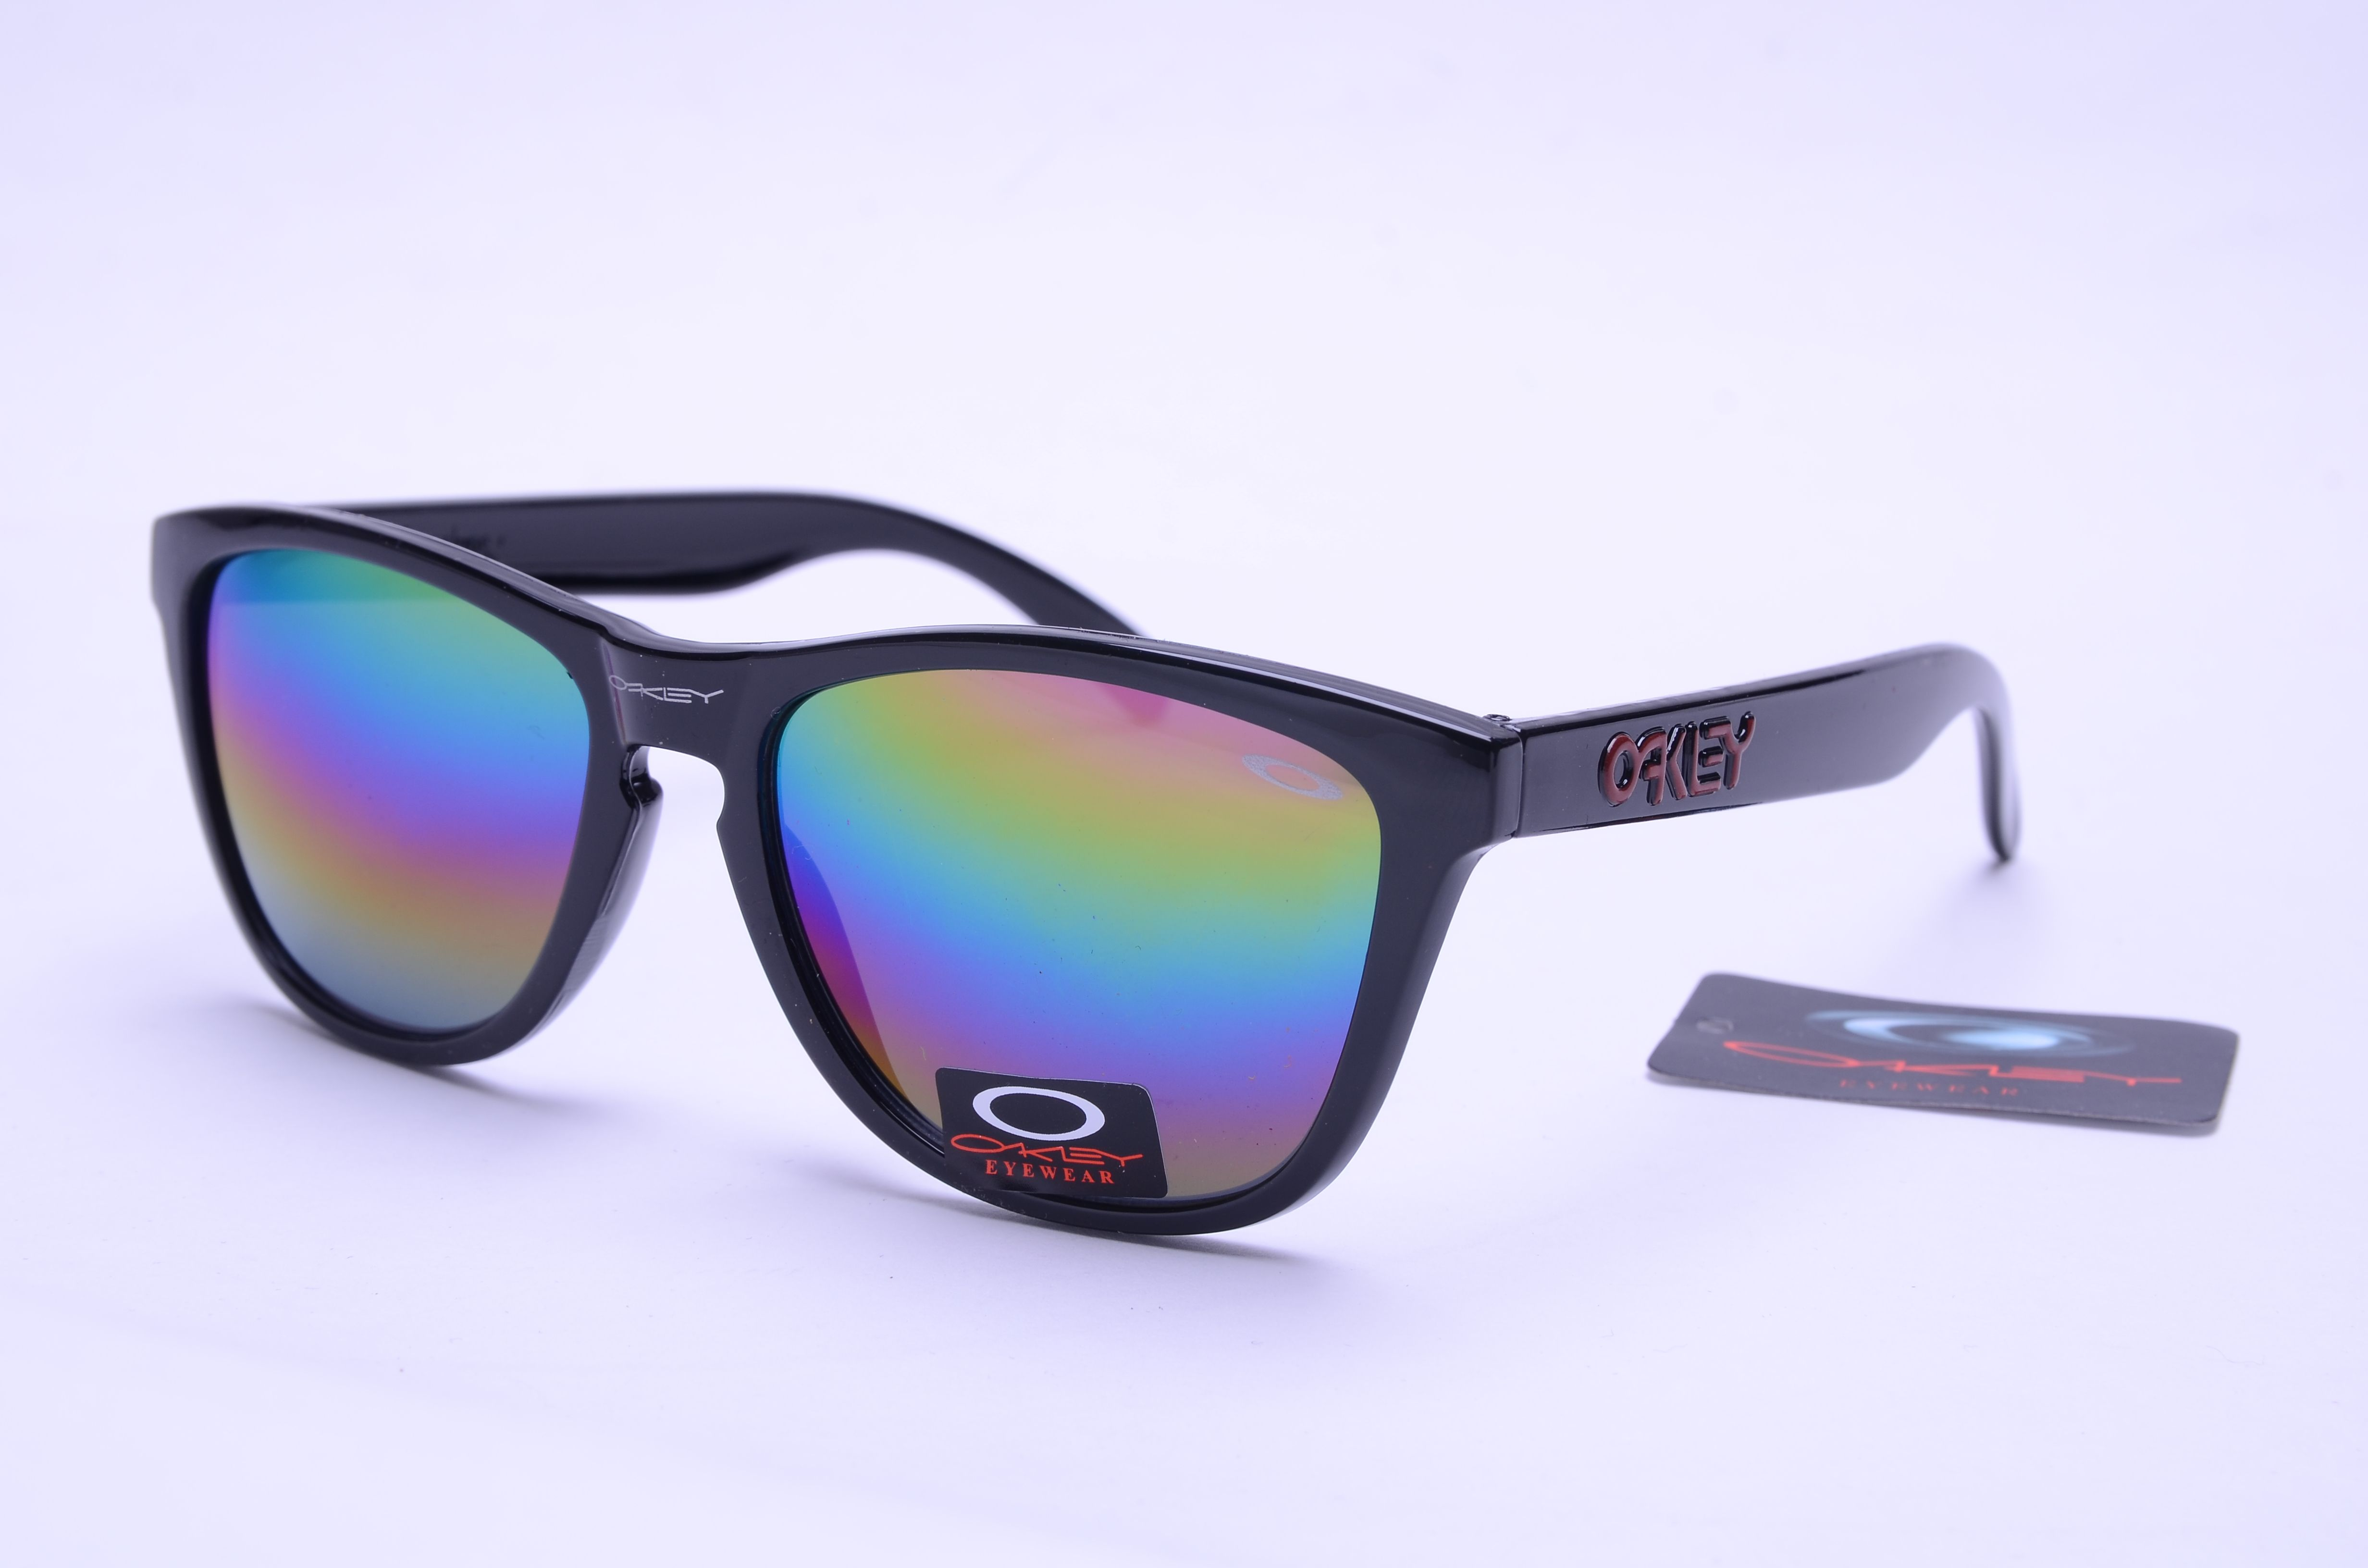 reminds me of mirrored ray ban sunglasses - / Frogskins Oakley Knockoff  Glasses Black Frame Rainbow Lens